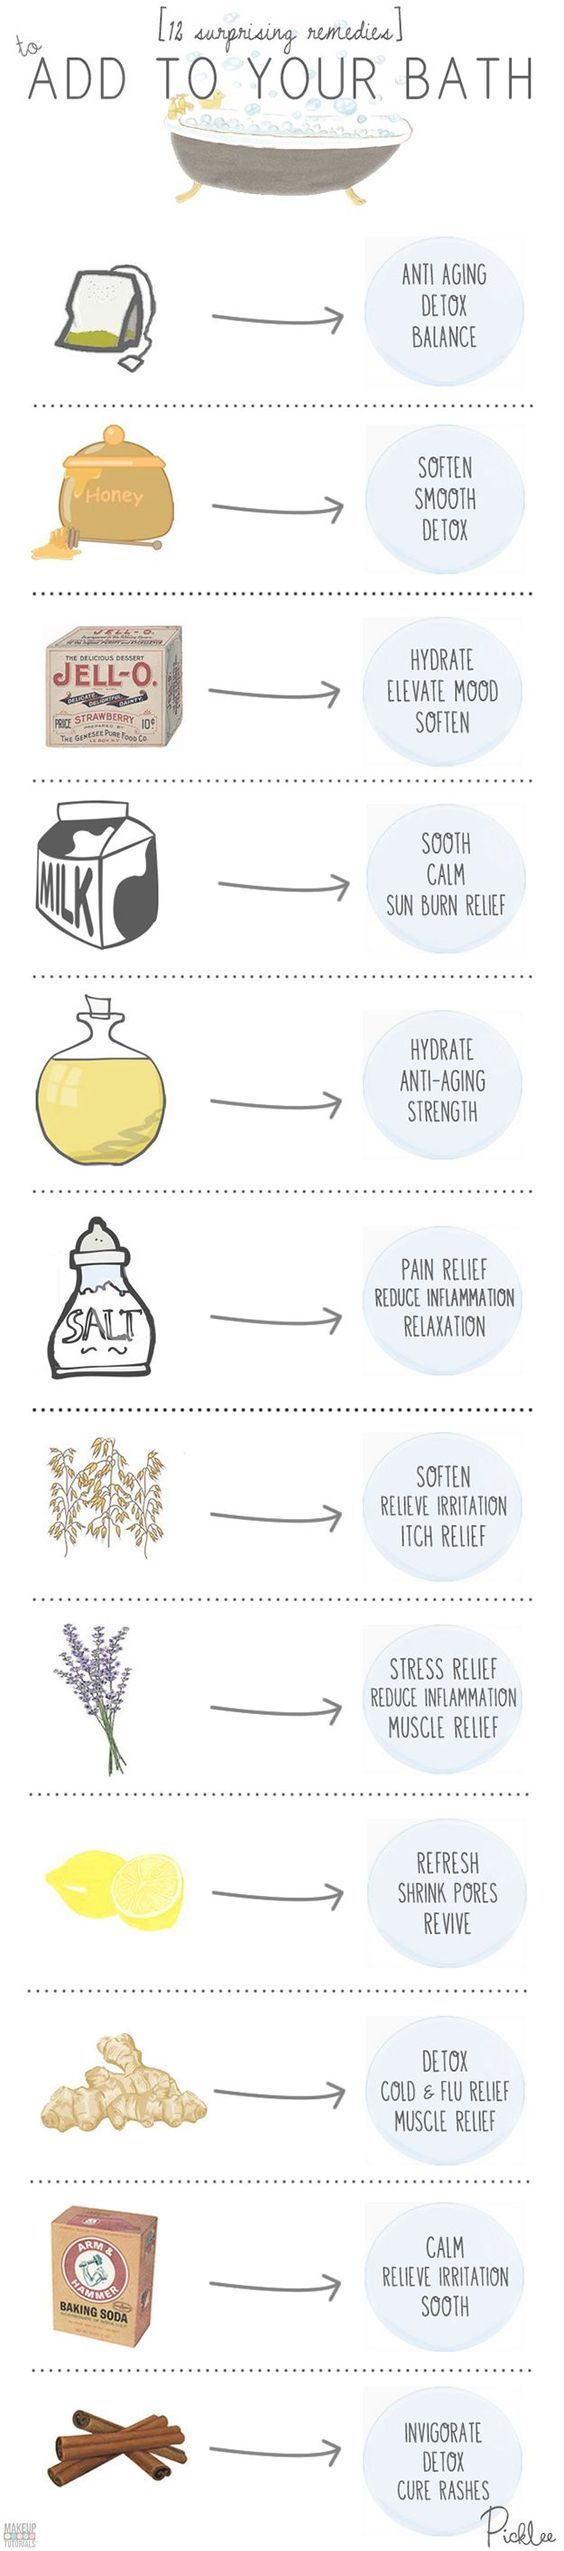 Bath Remedies - 59 DIY Beauty Tutorials | Awesome Life Saving Hacks Every Girl Should Know By Makeup Tutorials: